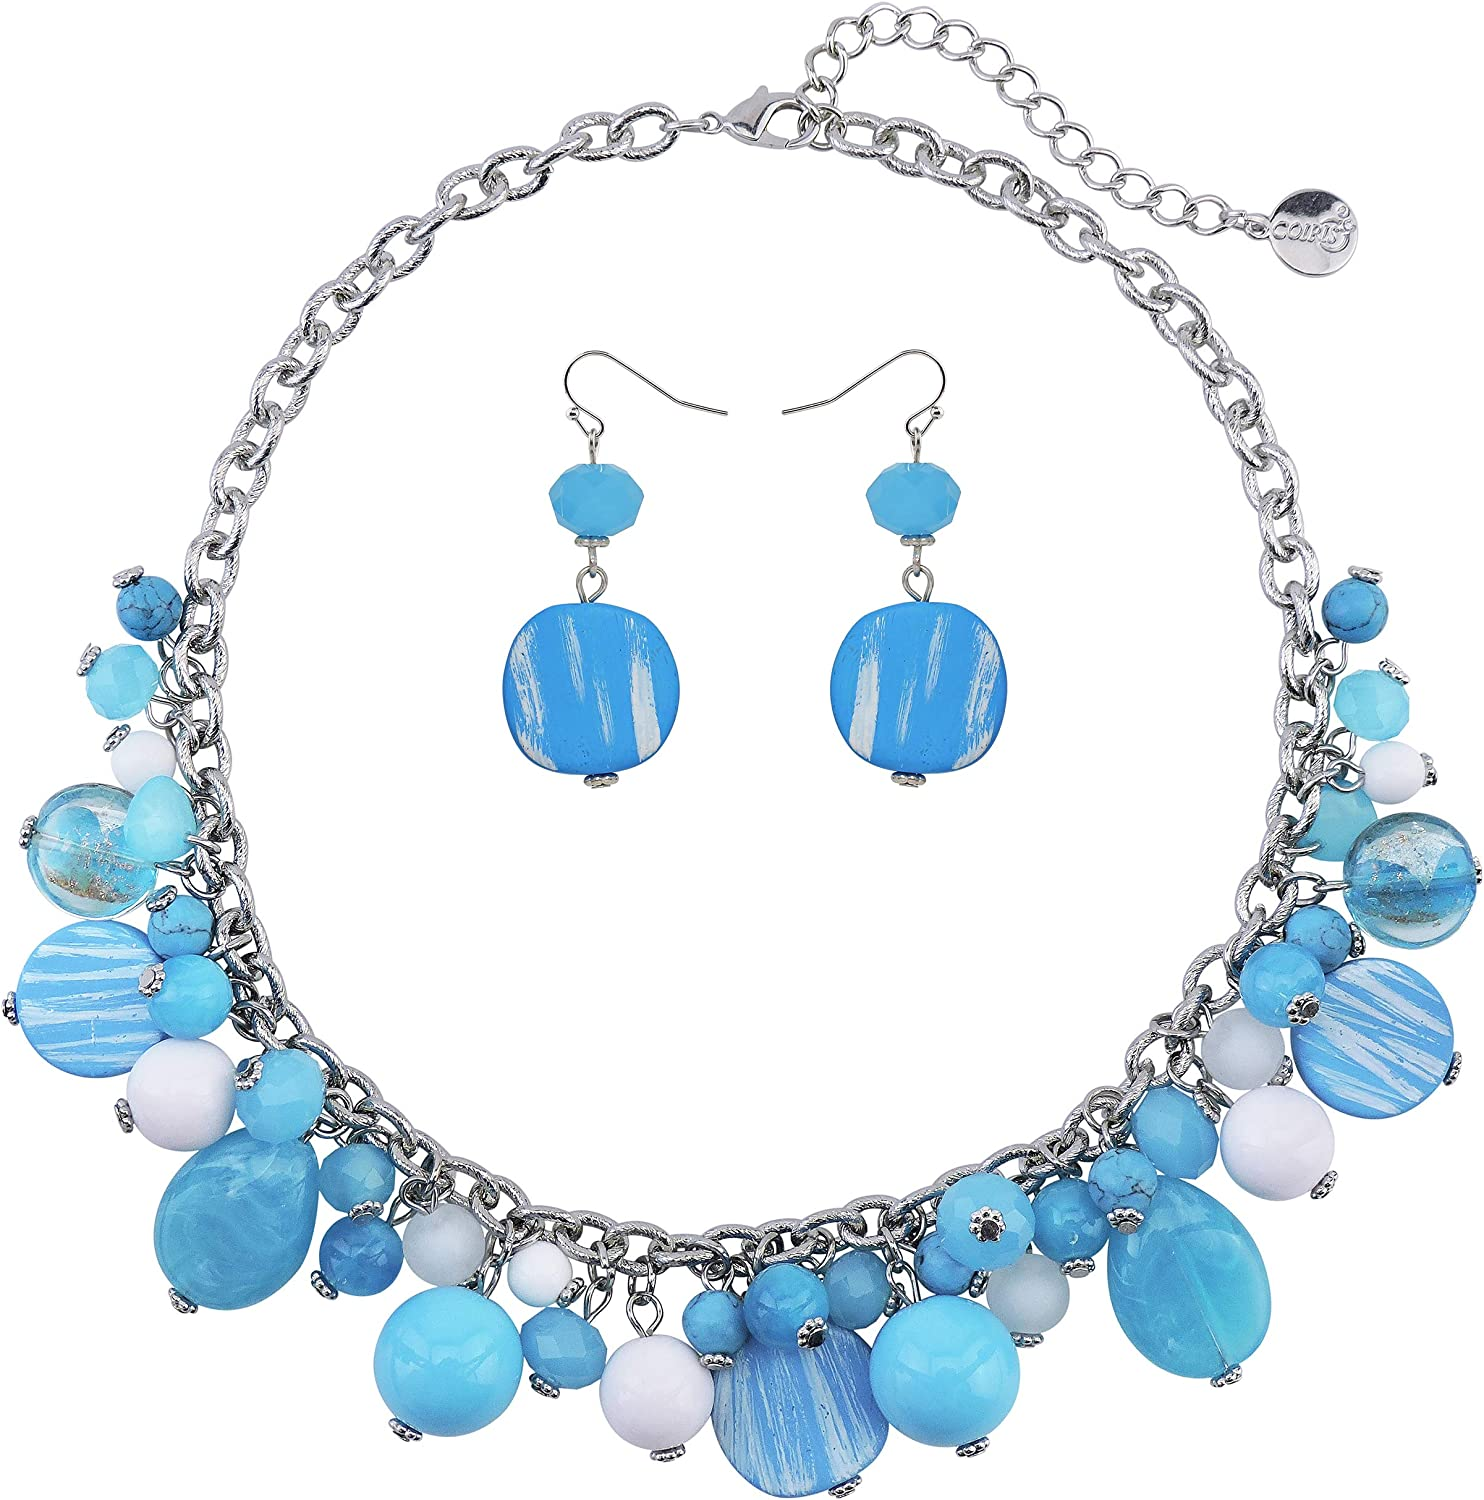 Coiris Women's Beaded Strand OFFicial mail order Statement 55% OFF Beads Necklace N0 Collar